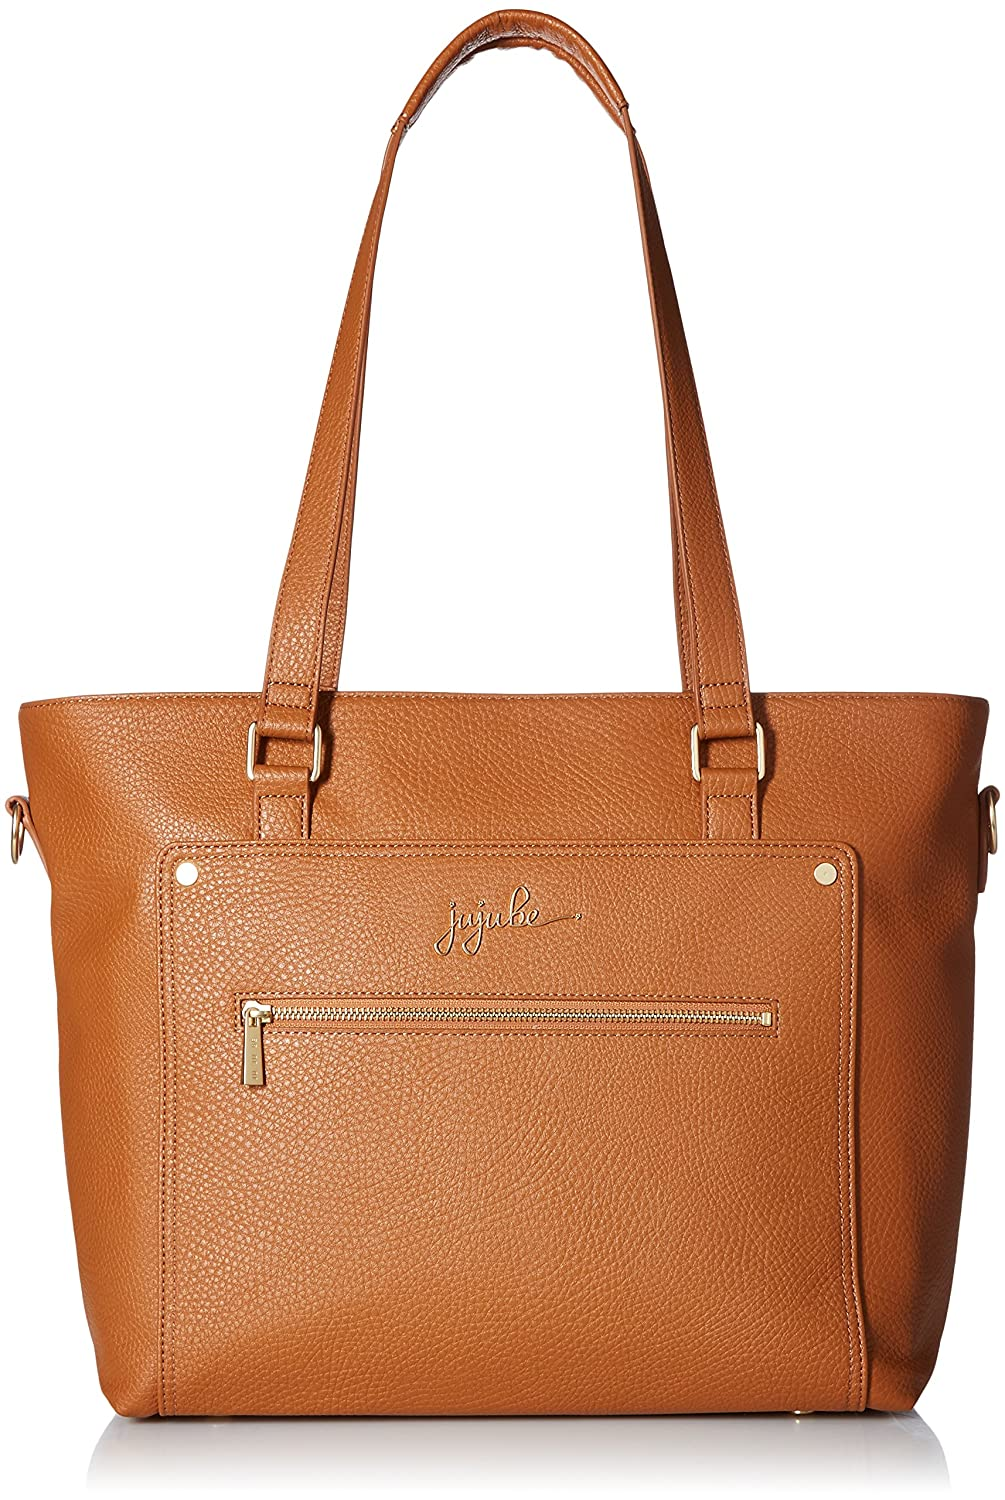 JuJuBe Cheap mail order specialty Max 80% OFF store Everyday Tote Vegan Leather Bag Ever Collection - Travel